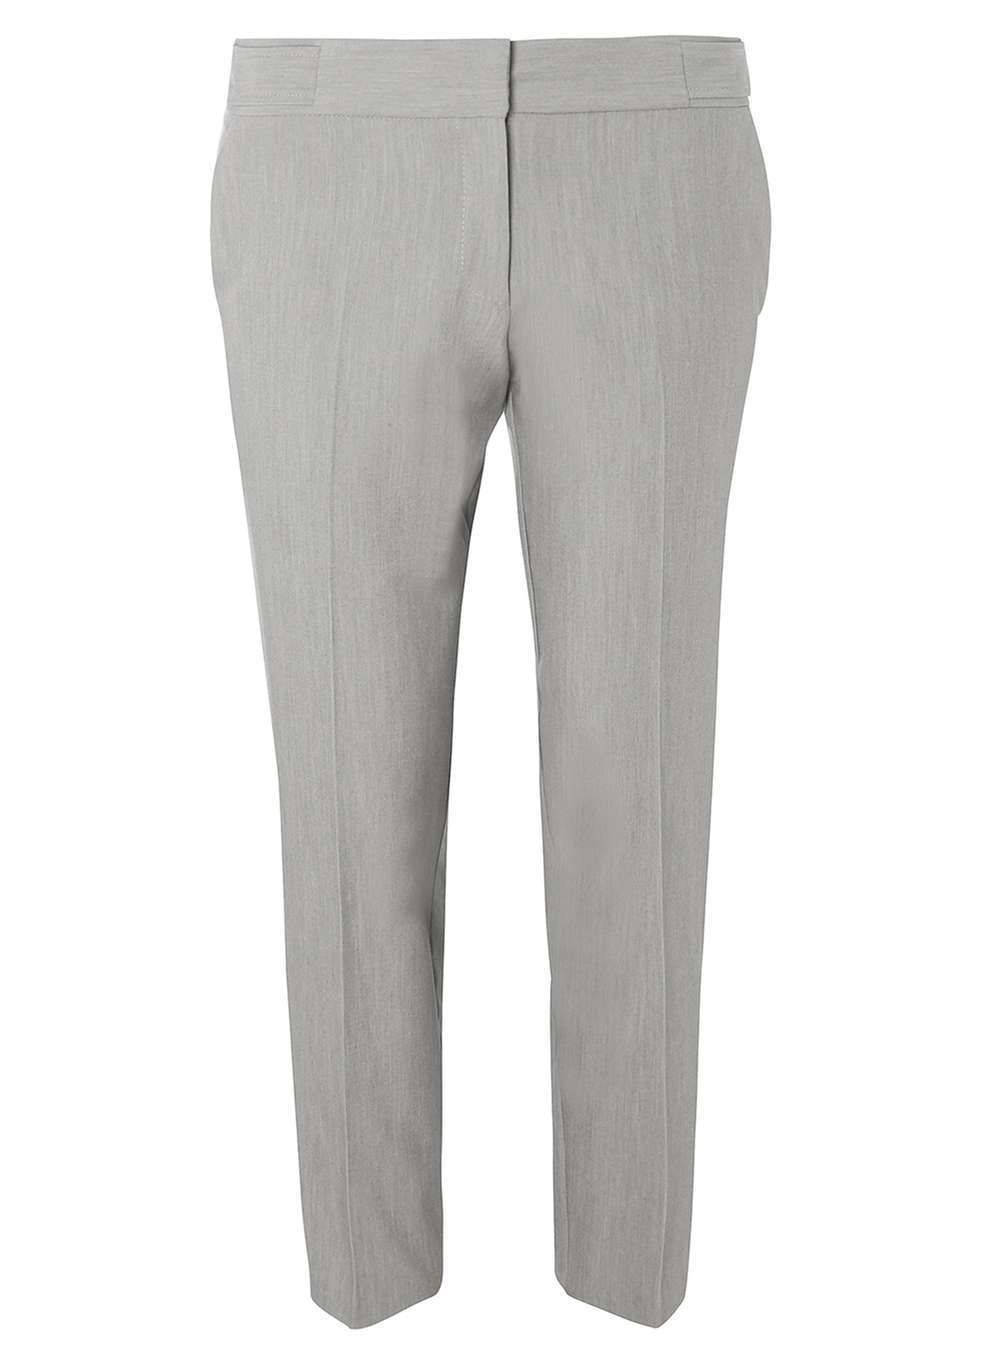 Womens Silver Side Tab Ankle Grazer Trousers Silver - pattern: plain; waist: mid/regular rise; predominant colour: silver; occasions: casual, creative work; length: ankle length; fibres: polyester/polyamide - stretch; fit: slim leg; pattern type: fabric; texture group: woven light midweight; style: standard; pattern size: standard (bottom); season: a/w 2016; wardrobe: highlight